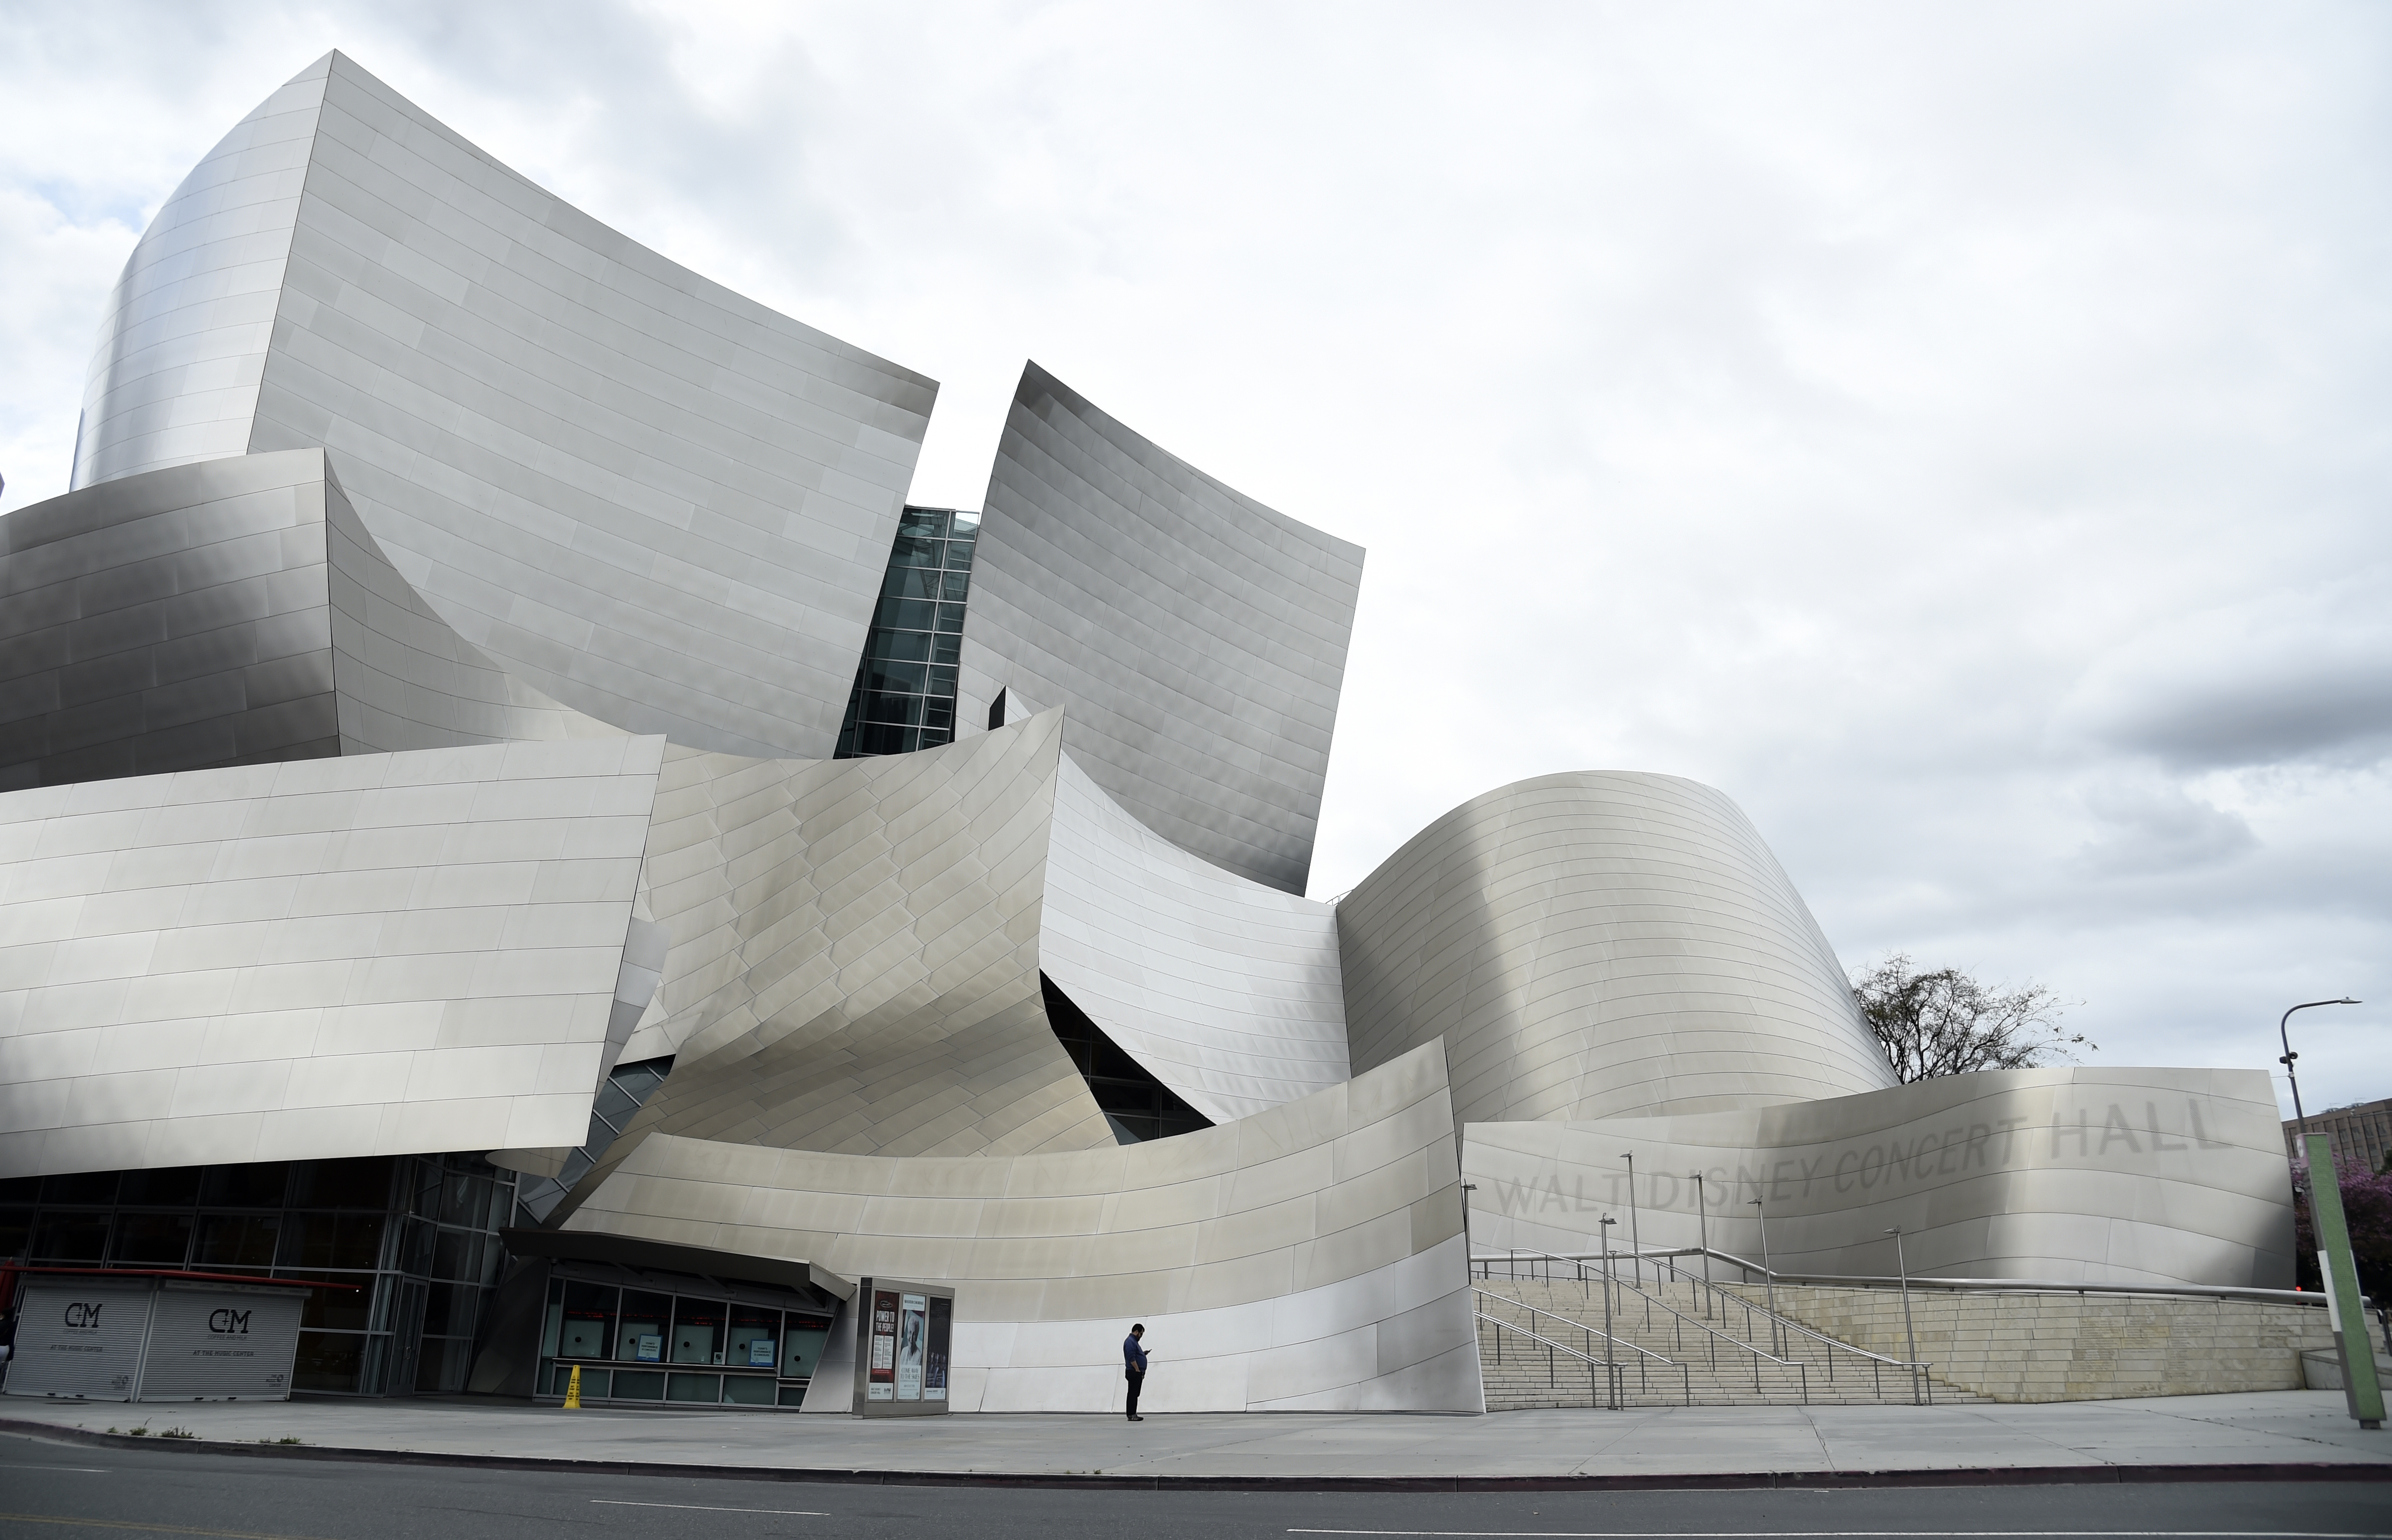 L.A. Phil Cancels All Walt Disney Concert Hall Live Events Through June 2021